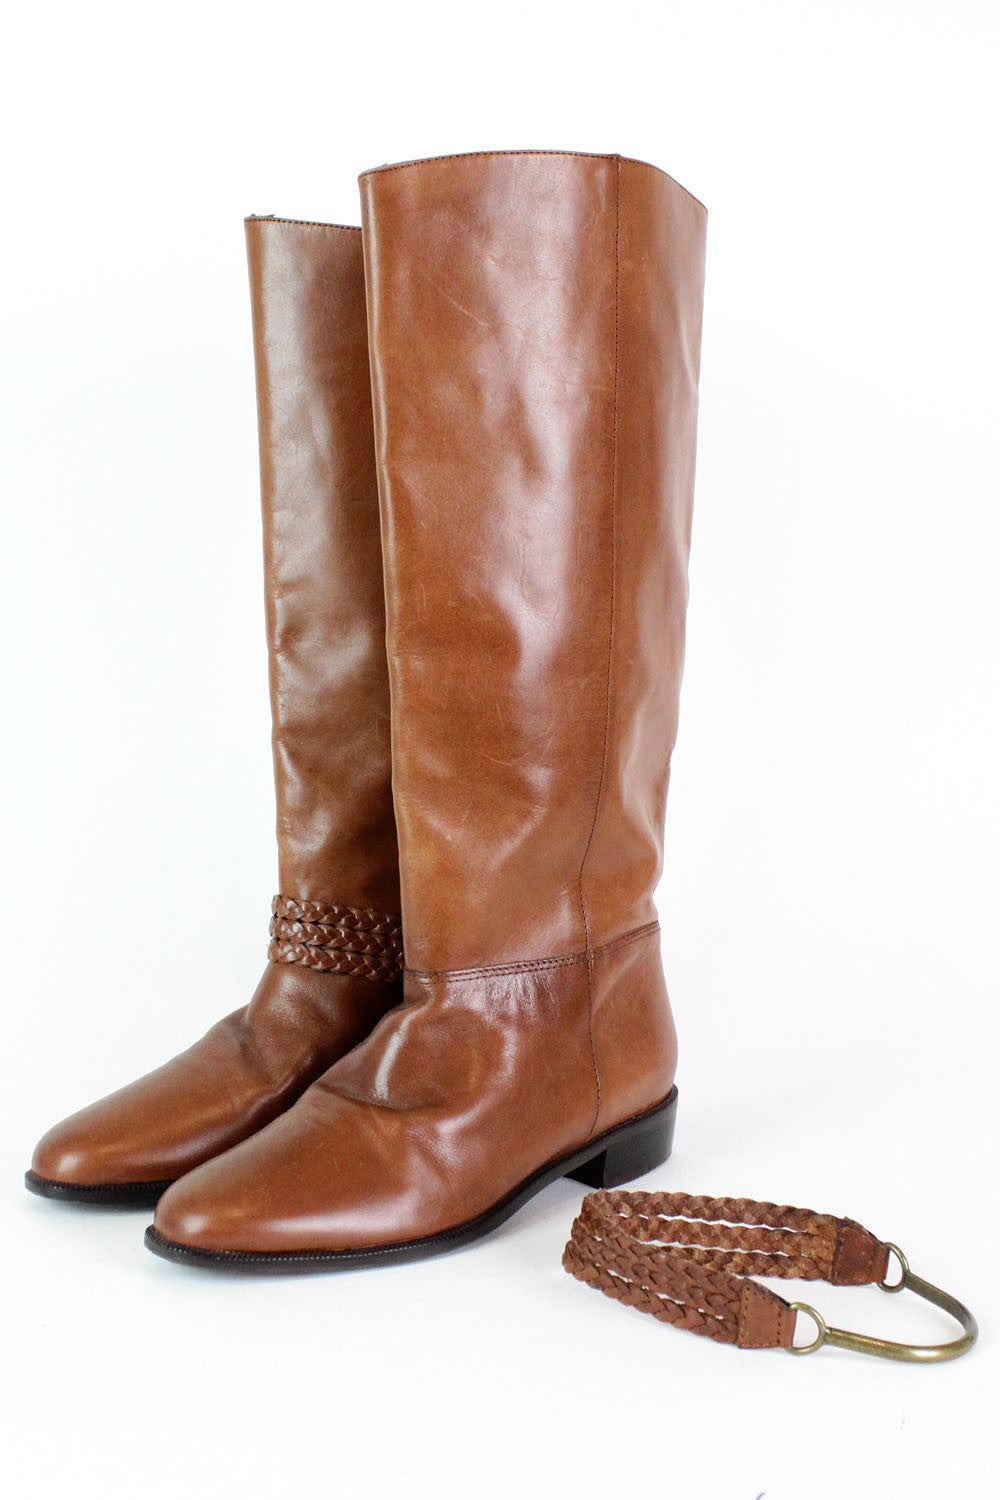 Chestnut Leather Braided Harness Boots 6 {As Is}